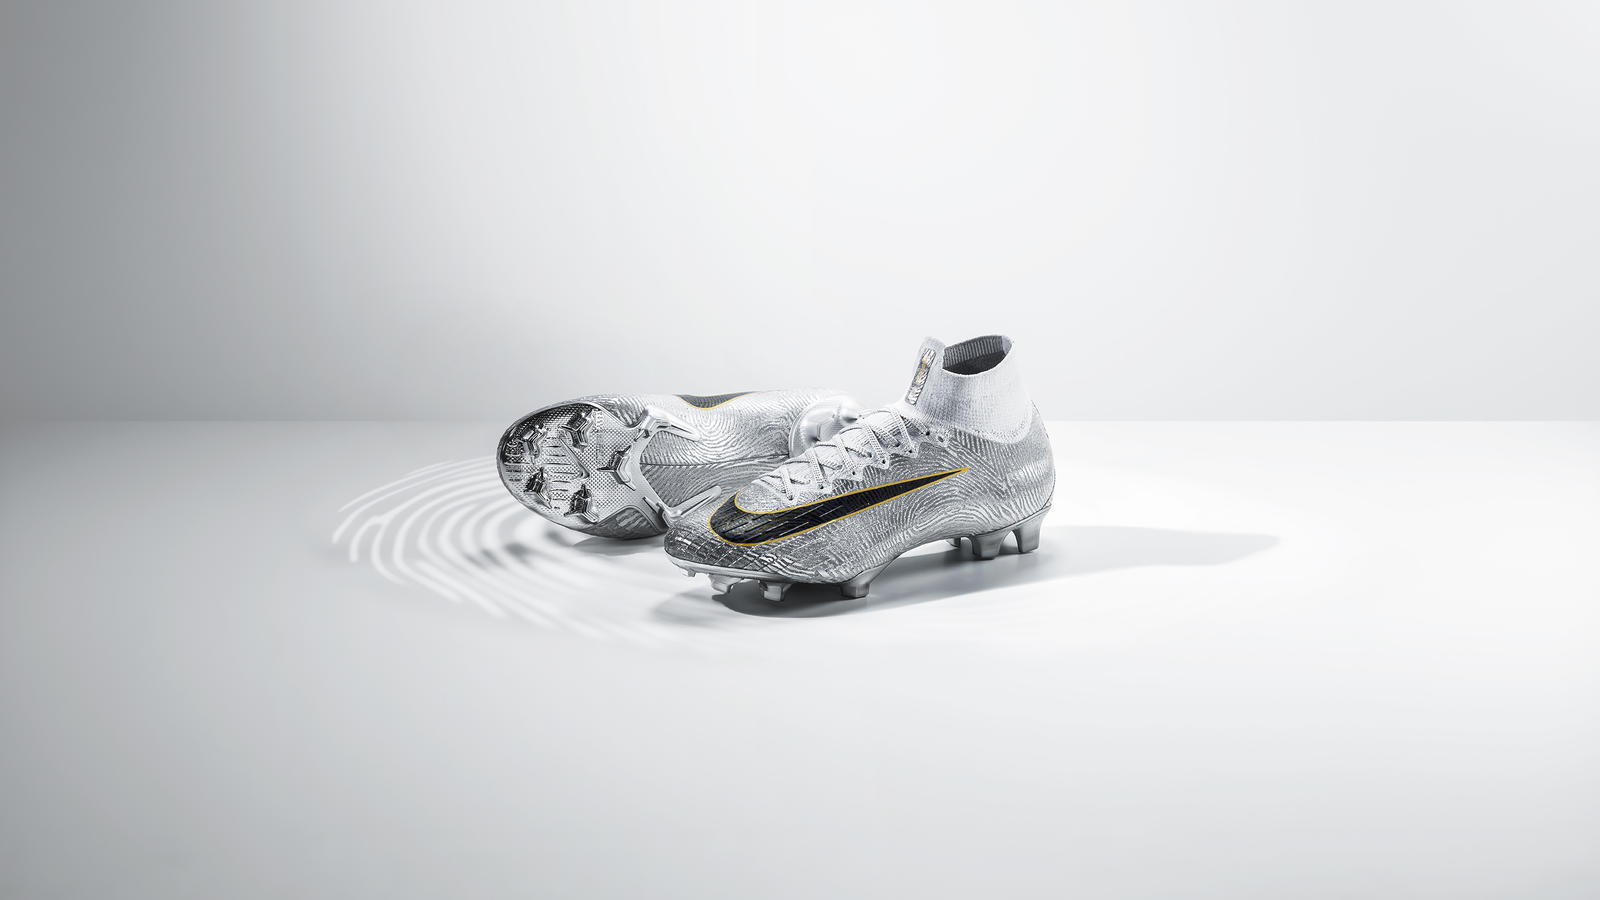 best website 3893a 003df December 03, 2018 - Honoring Luka Modrić s achievements, the  limited-edition Golden Touch Mercurial 360 boot will release December 4 on  Nike.com and at ...